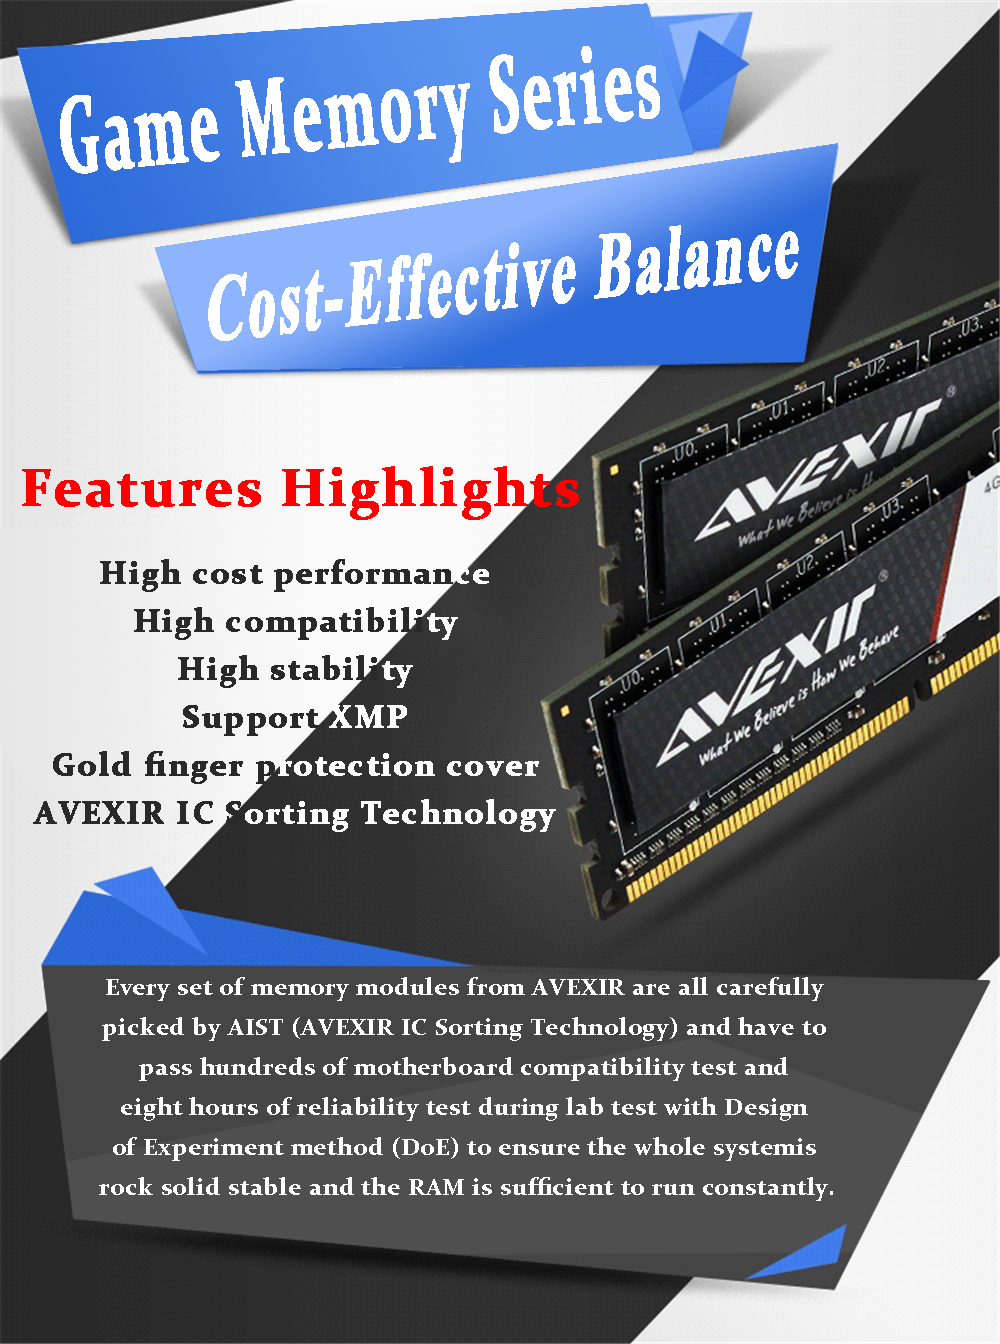 AVEXIR RAM DDR3 4GB / DDR3 8GB Memory Frequency 1600MHz 1.5V Desktop memory Interface Type 240pin 11-11-11-28 CL=11 Single RAMs 45